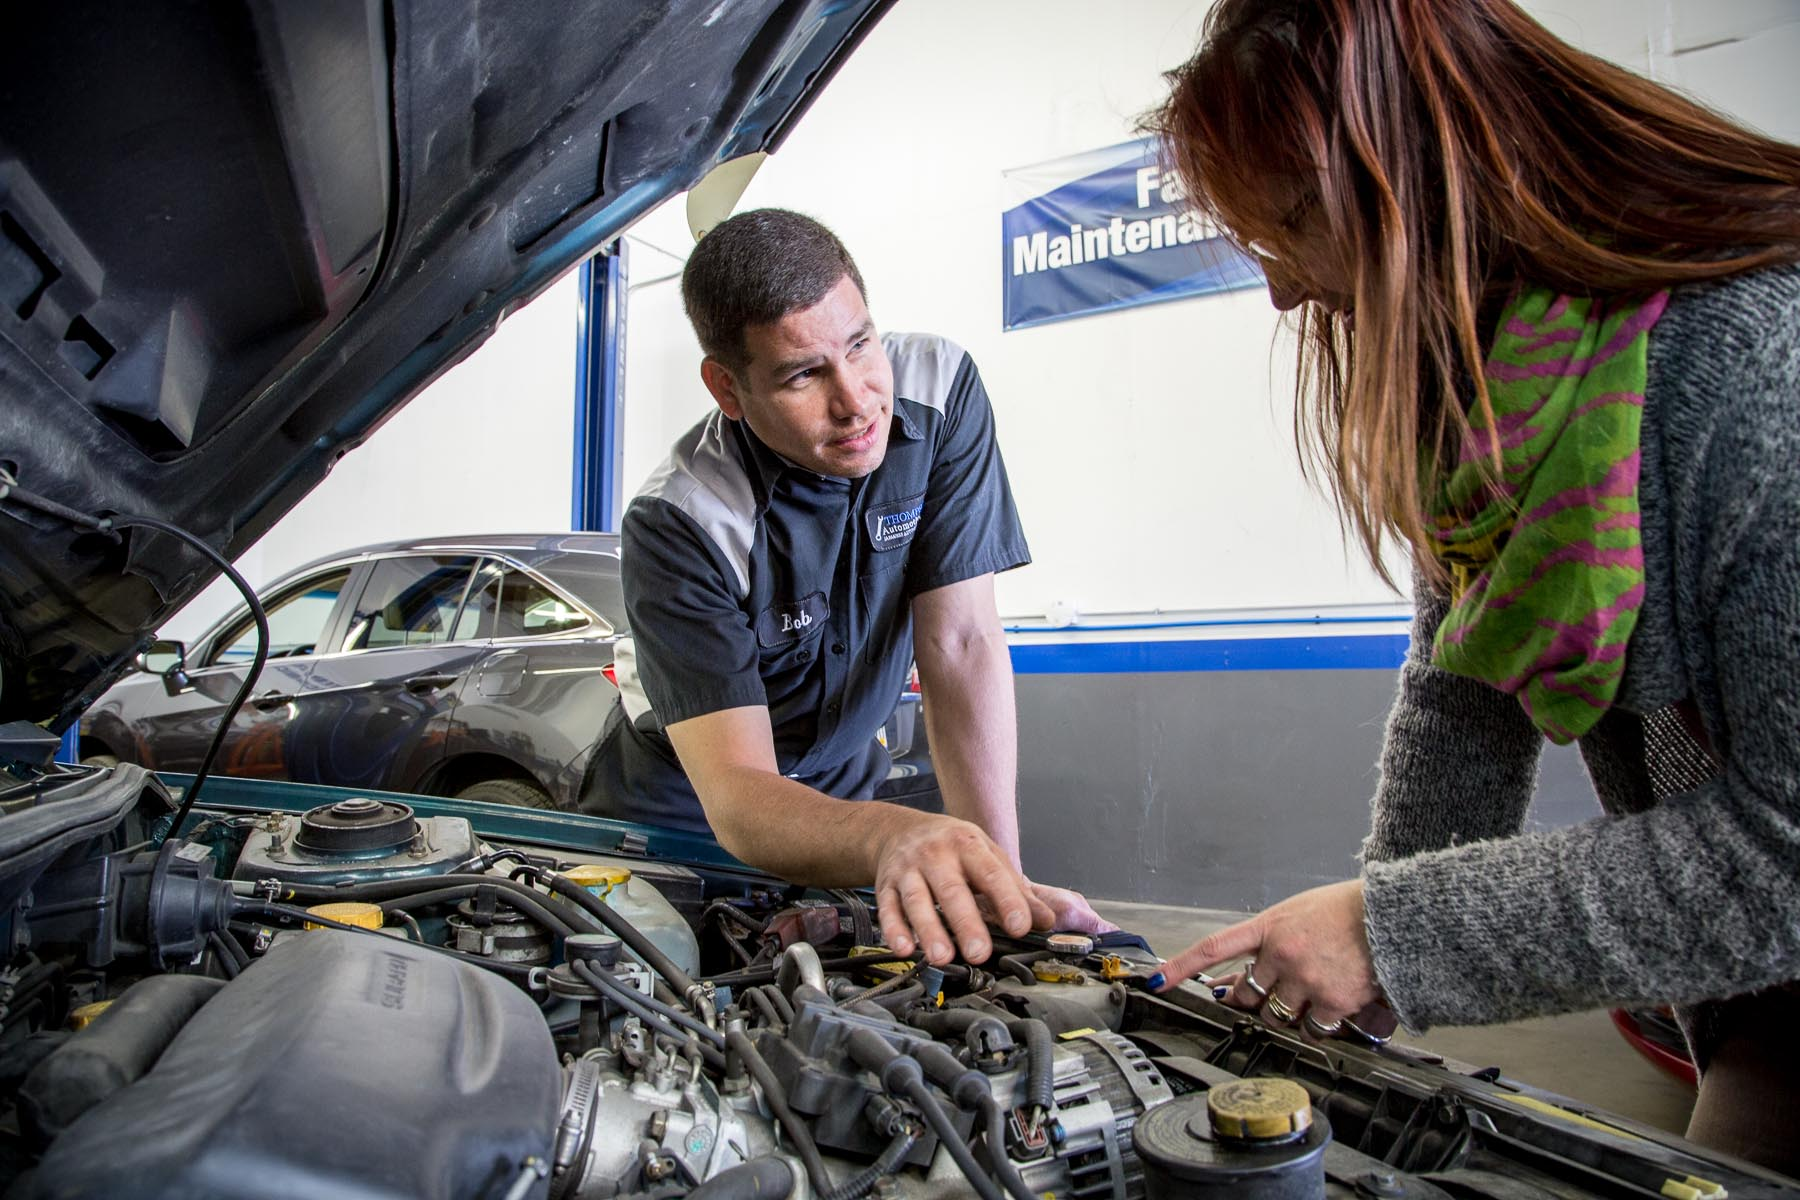 Mechanic Discussing Car Repairs